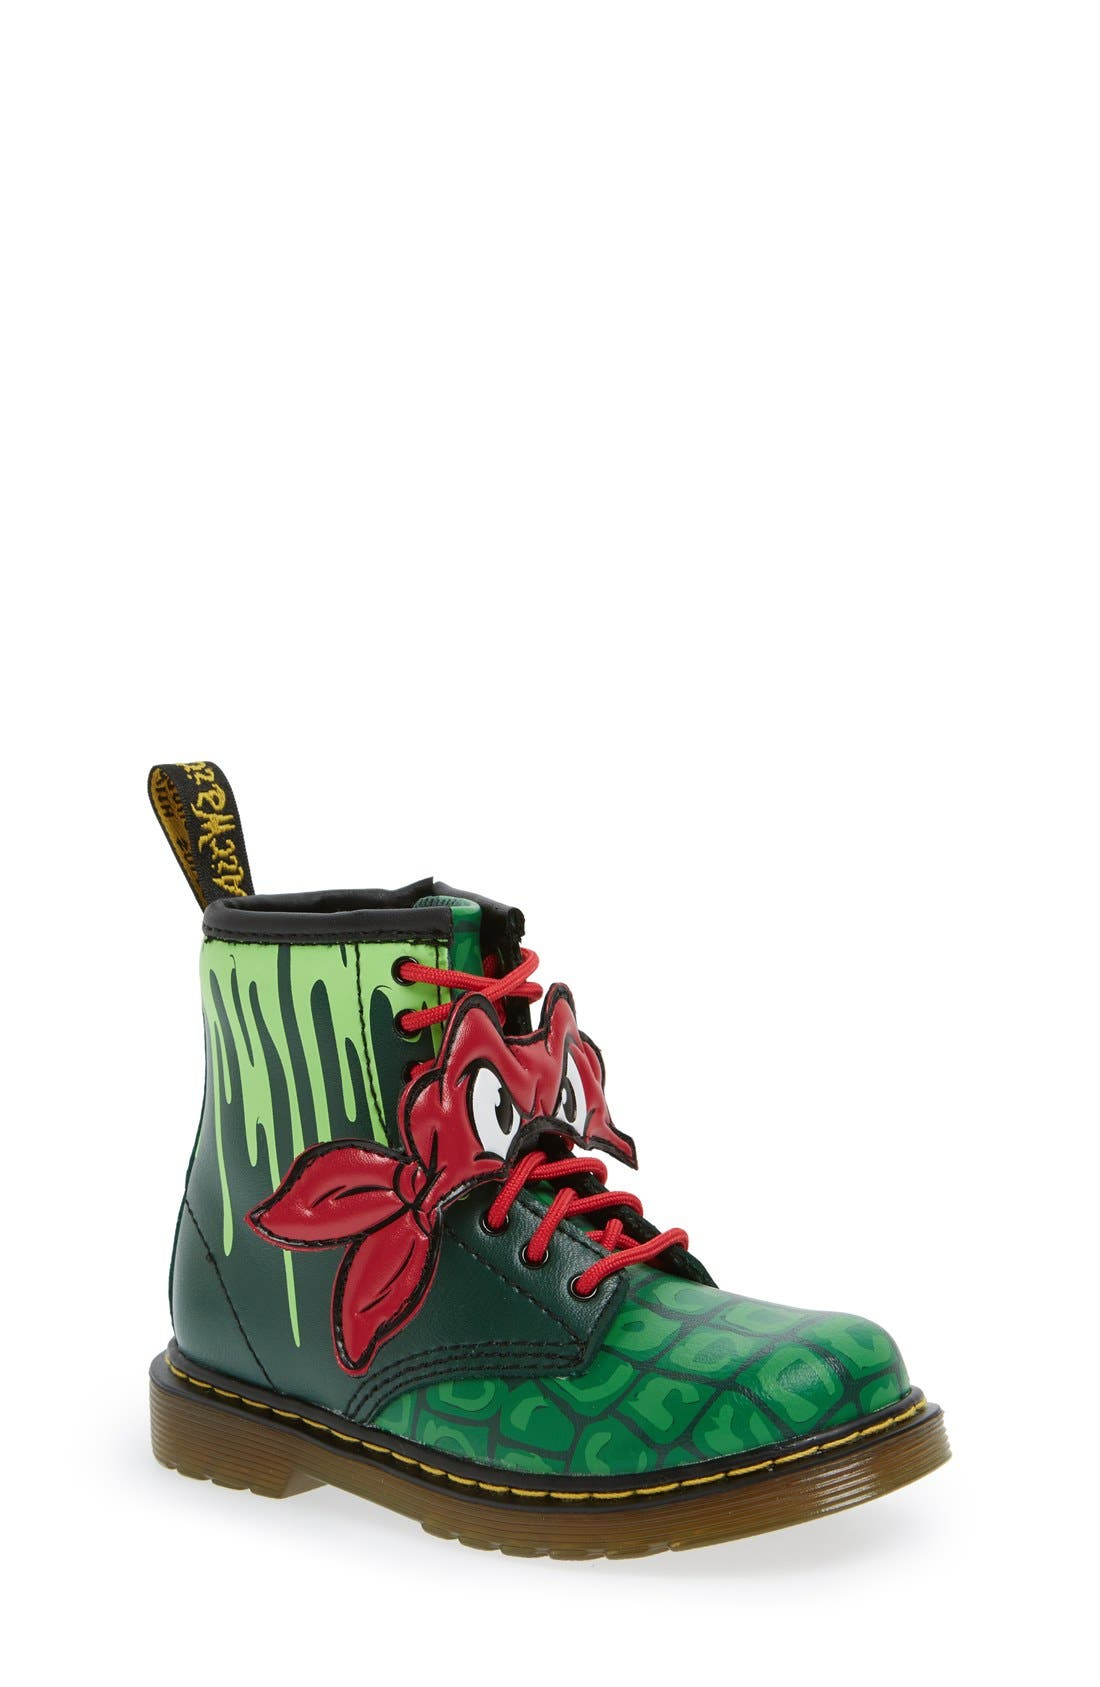 DR. MARTENS 'Teenage Mutant Ninja Turtles - Raph' Boot, Main, color, 313